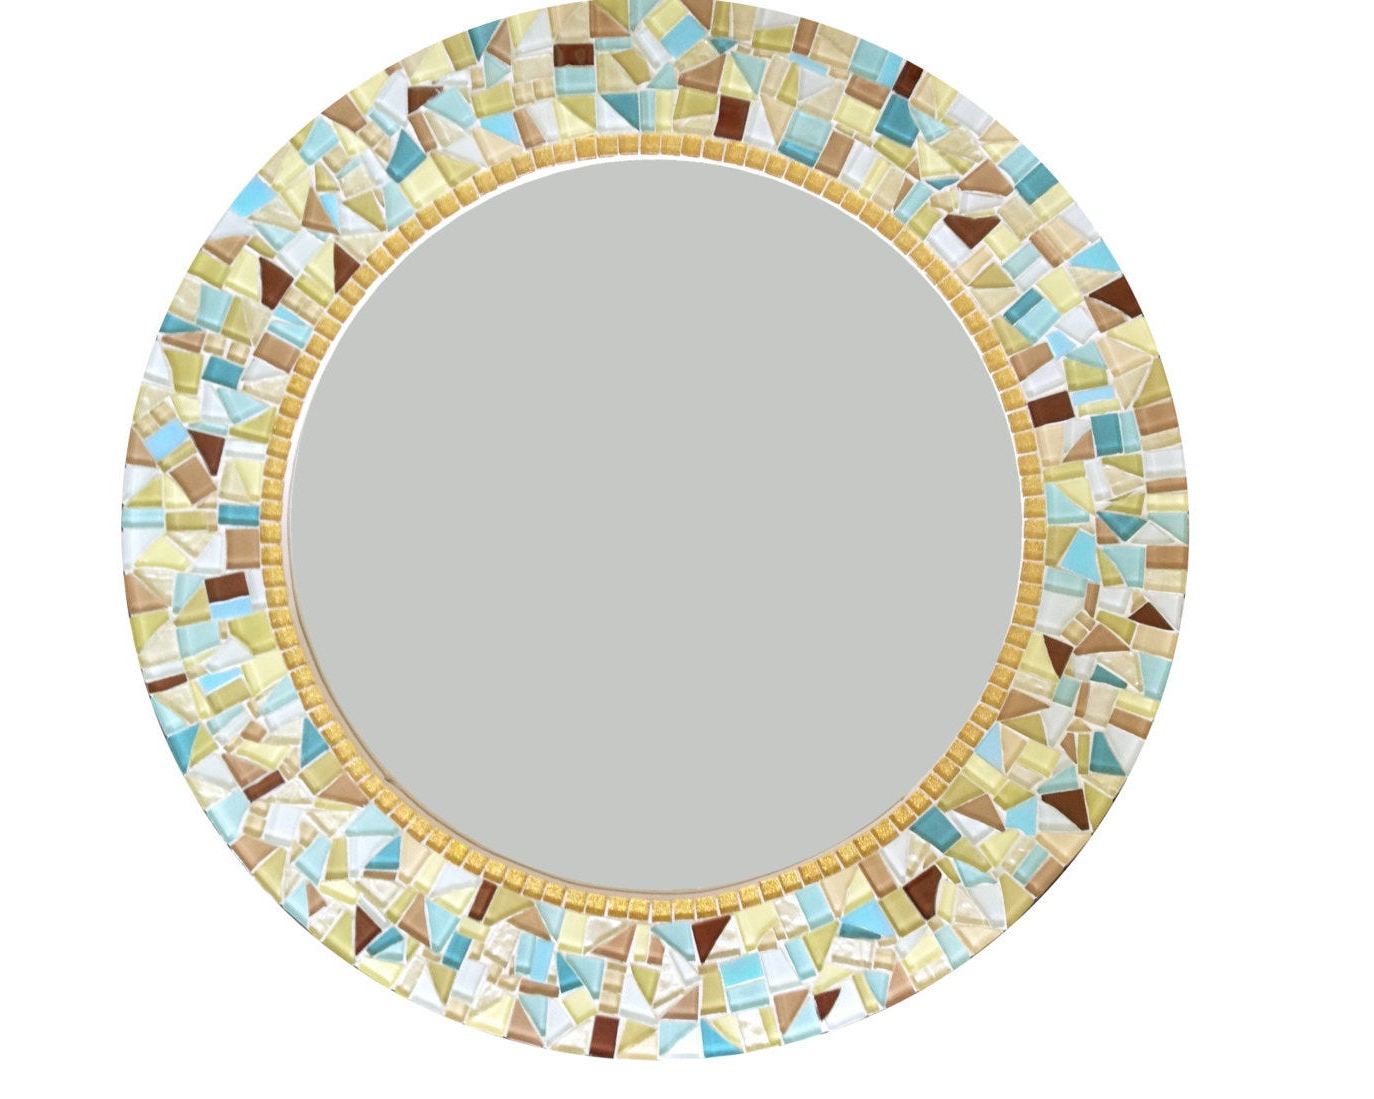 Recent Round Mosaic Wall Mirrors For Wall Mirror // Round Mosaic Mirror // Decorative Mirror // Wall Decor // Yellow, Gold, Aqua, Tan (View 5 of 20)